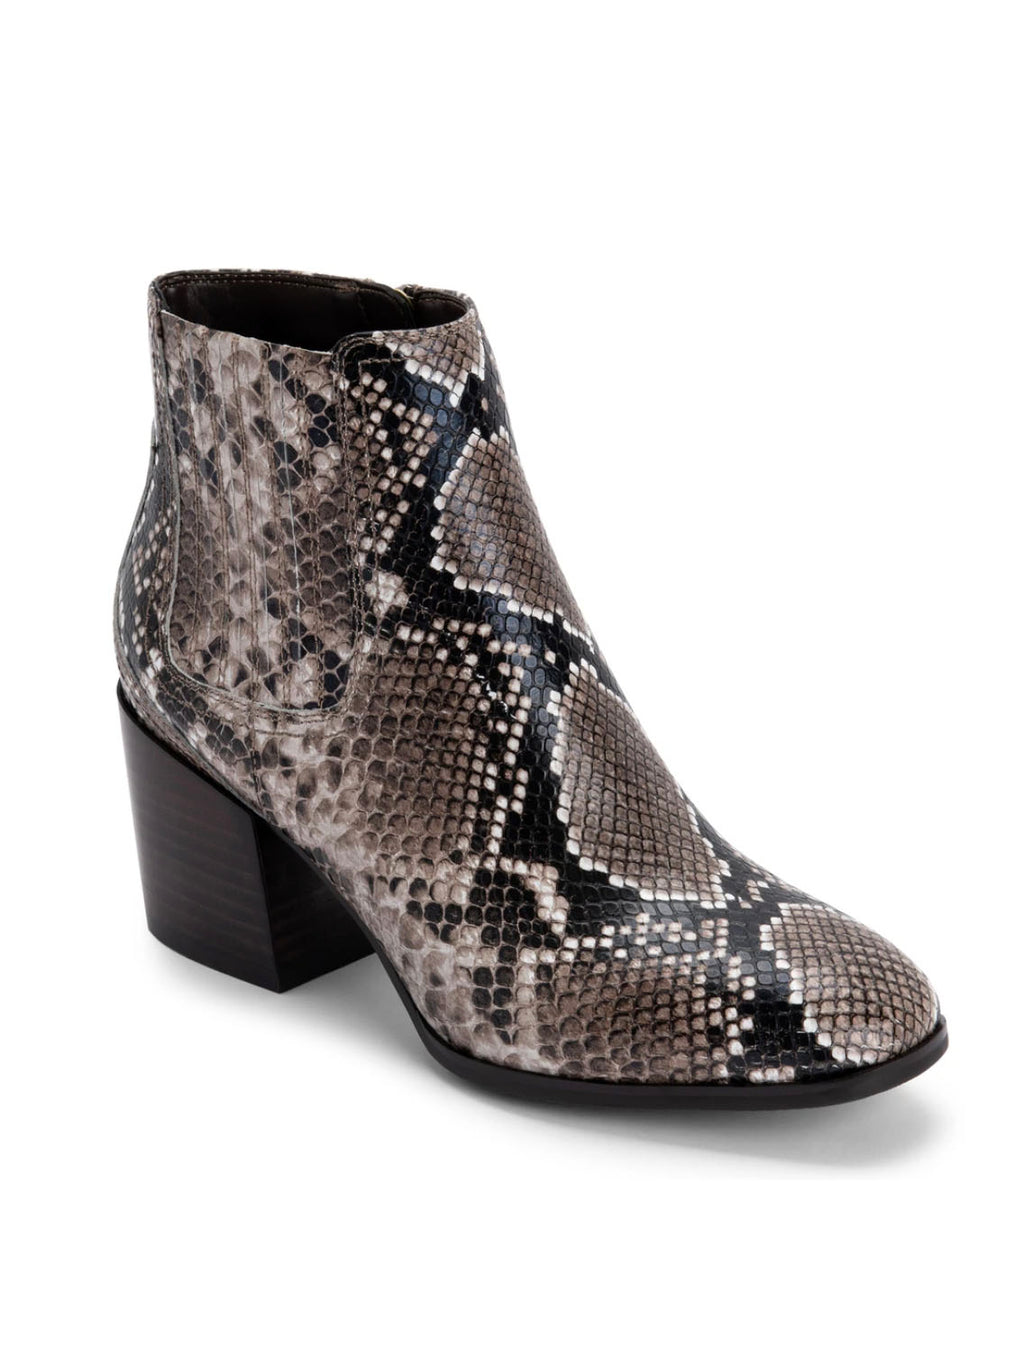 Blondo Sabina Boot in Brown Snake